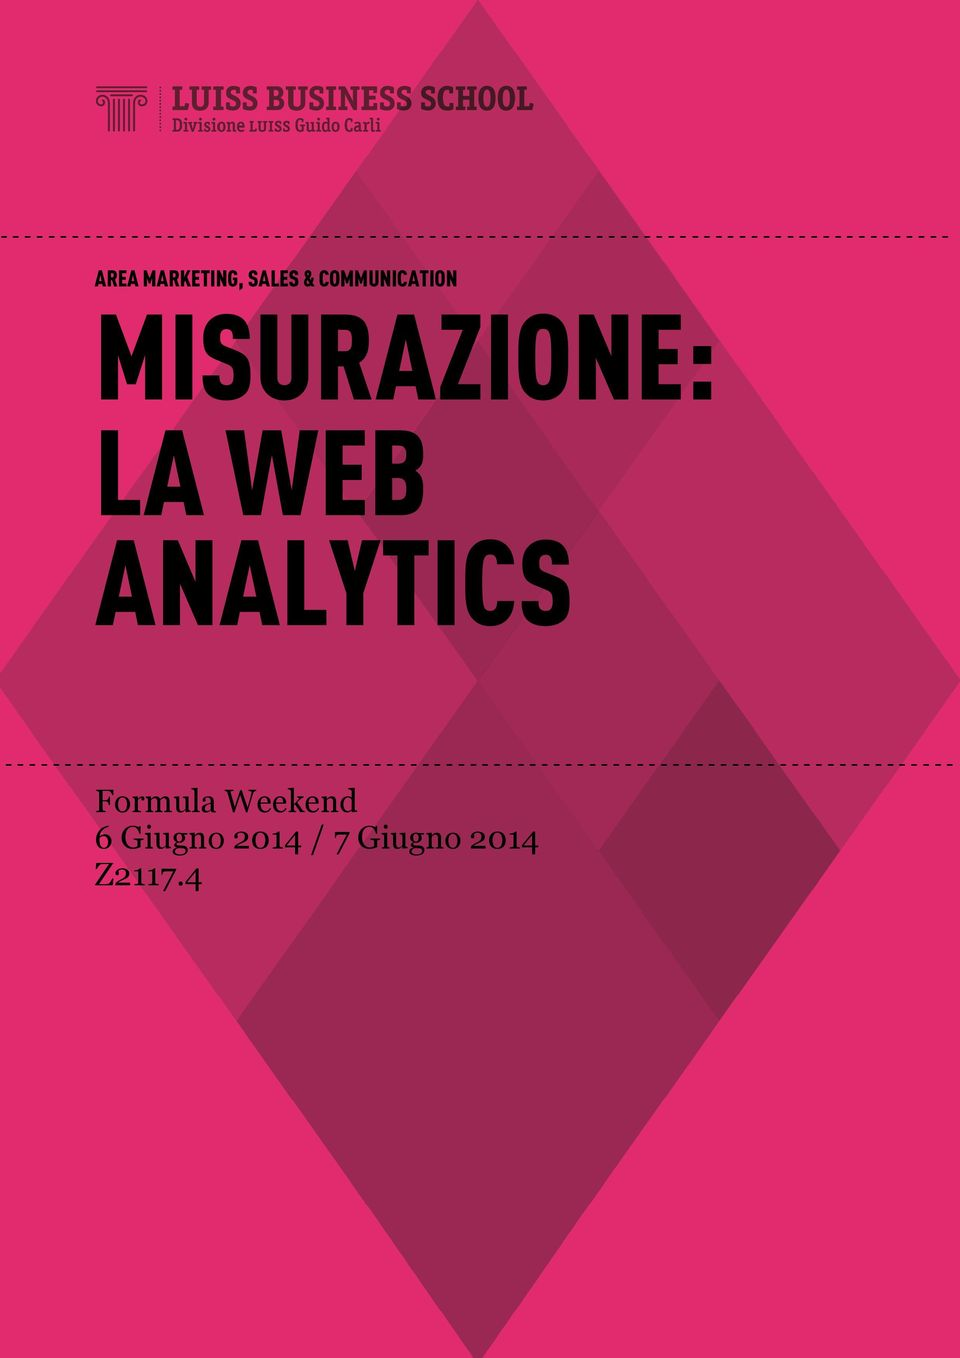 ANALYTICS  - - - - - - - - - - - - - - - - - - - - - - - - - Formula Weekend 6 Giugno 2014 / 7 Giugno 2014